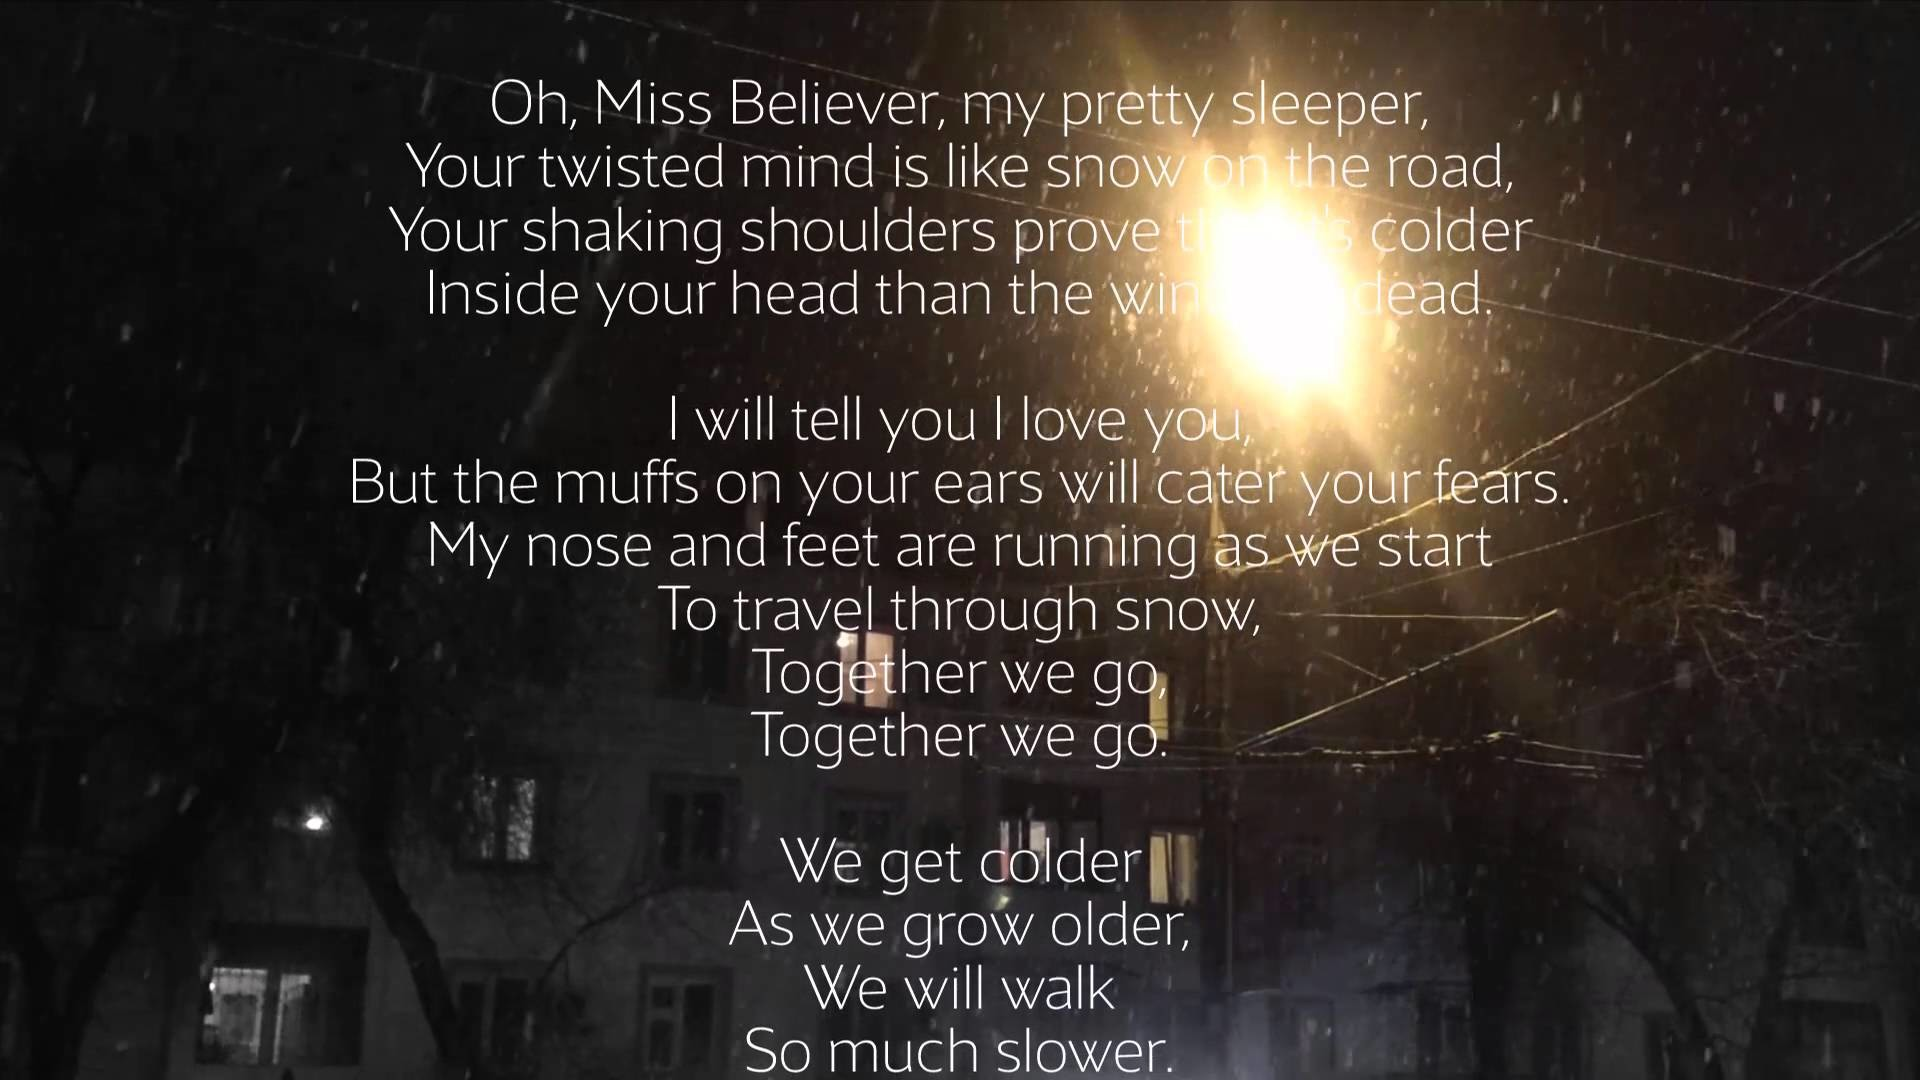 Believer video song download hd with lyrics